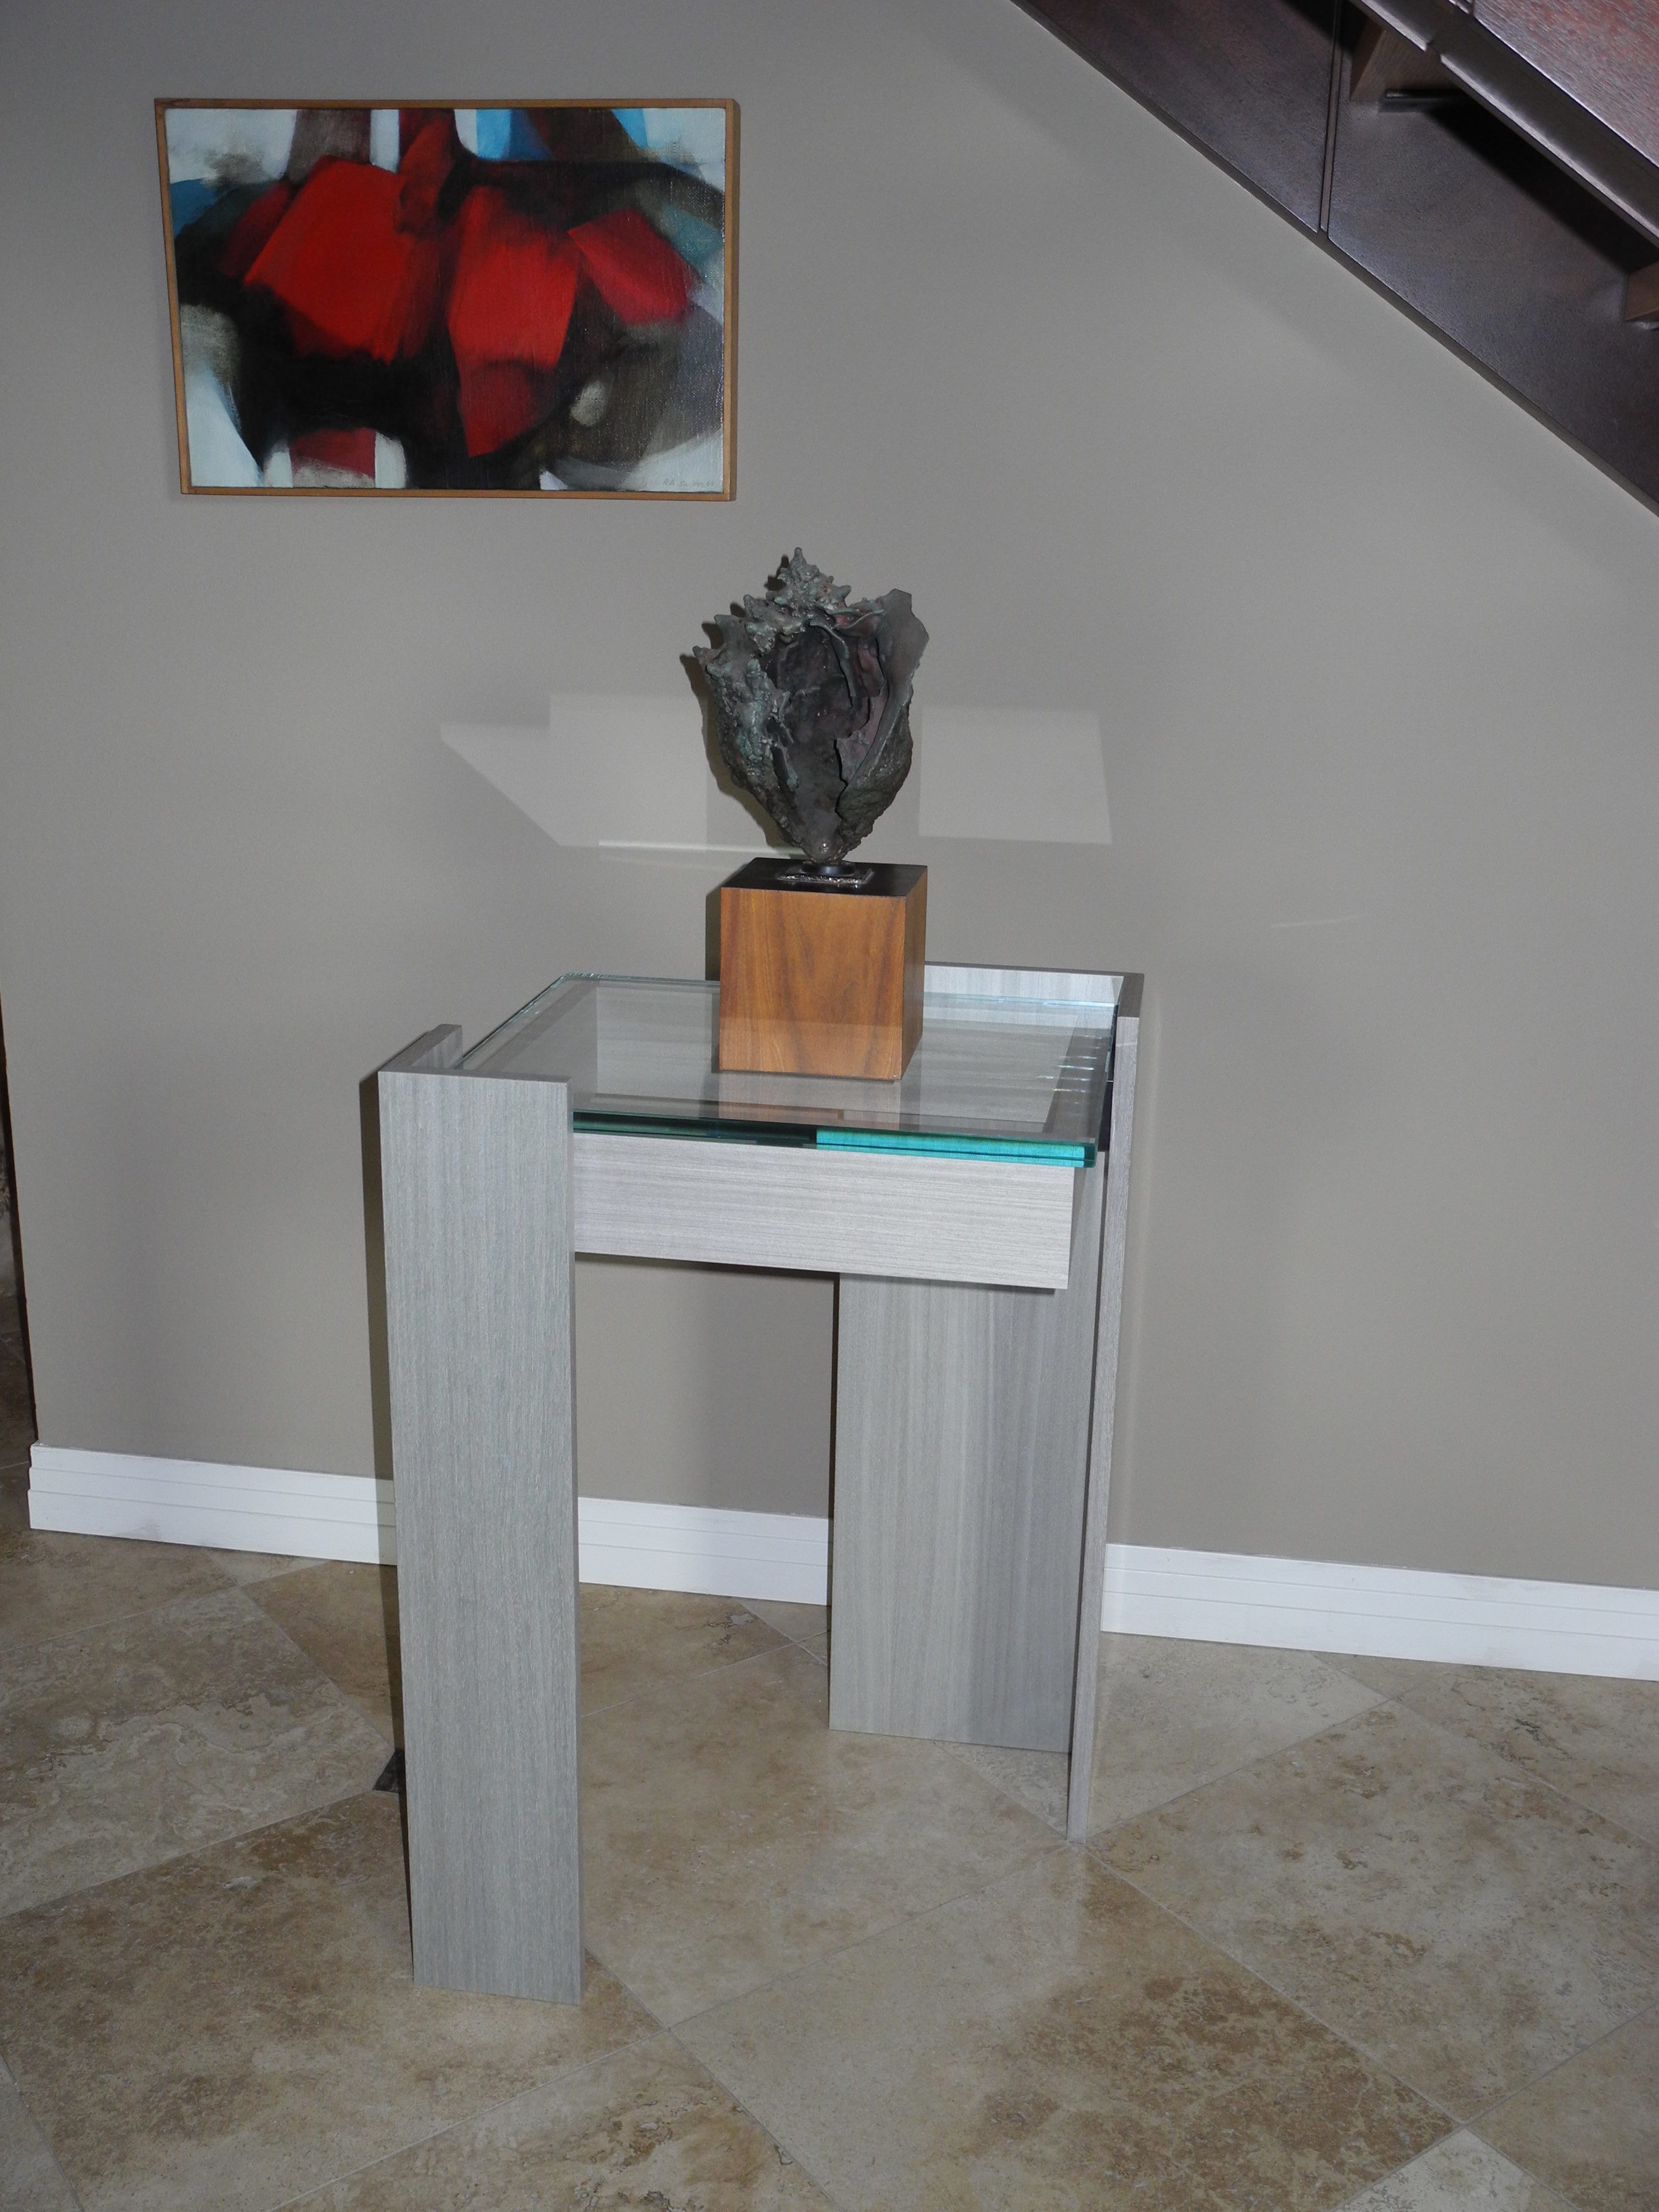 koto wood table tall with glass top and sculpture